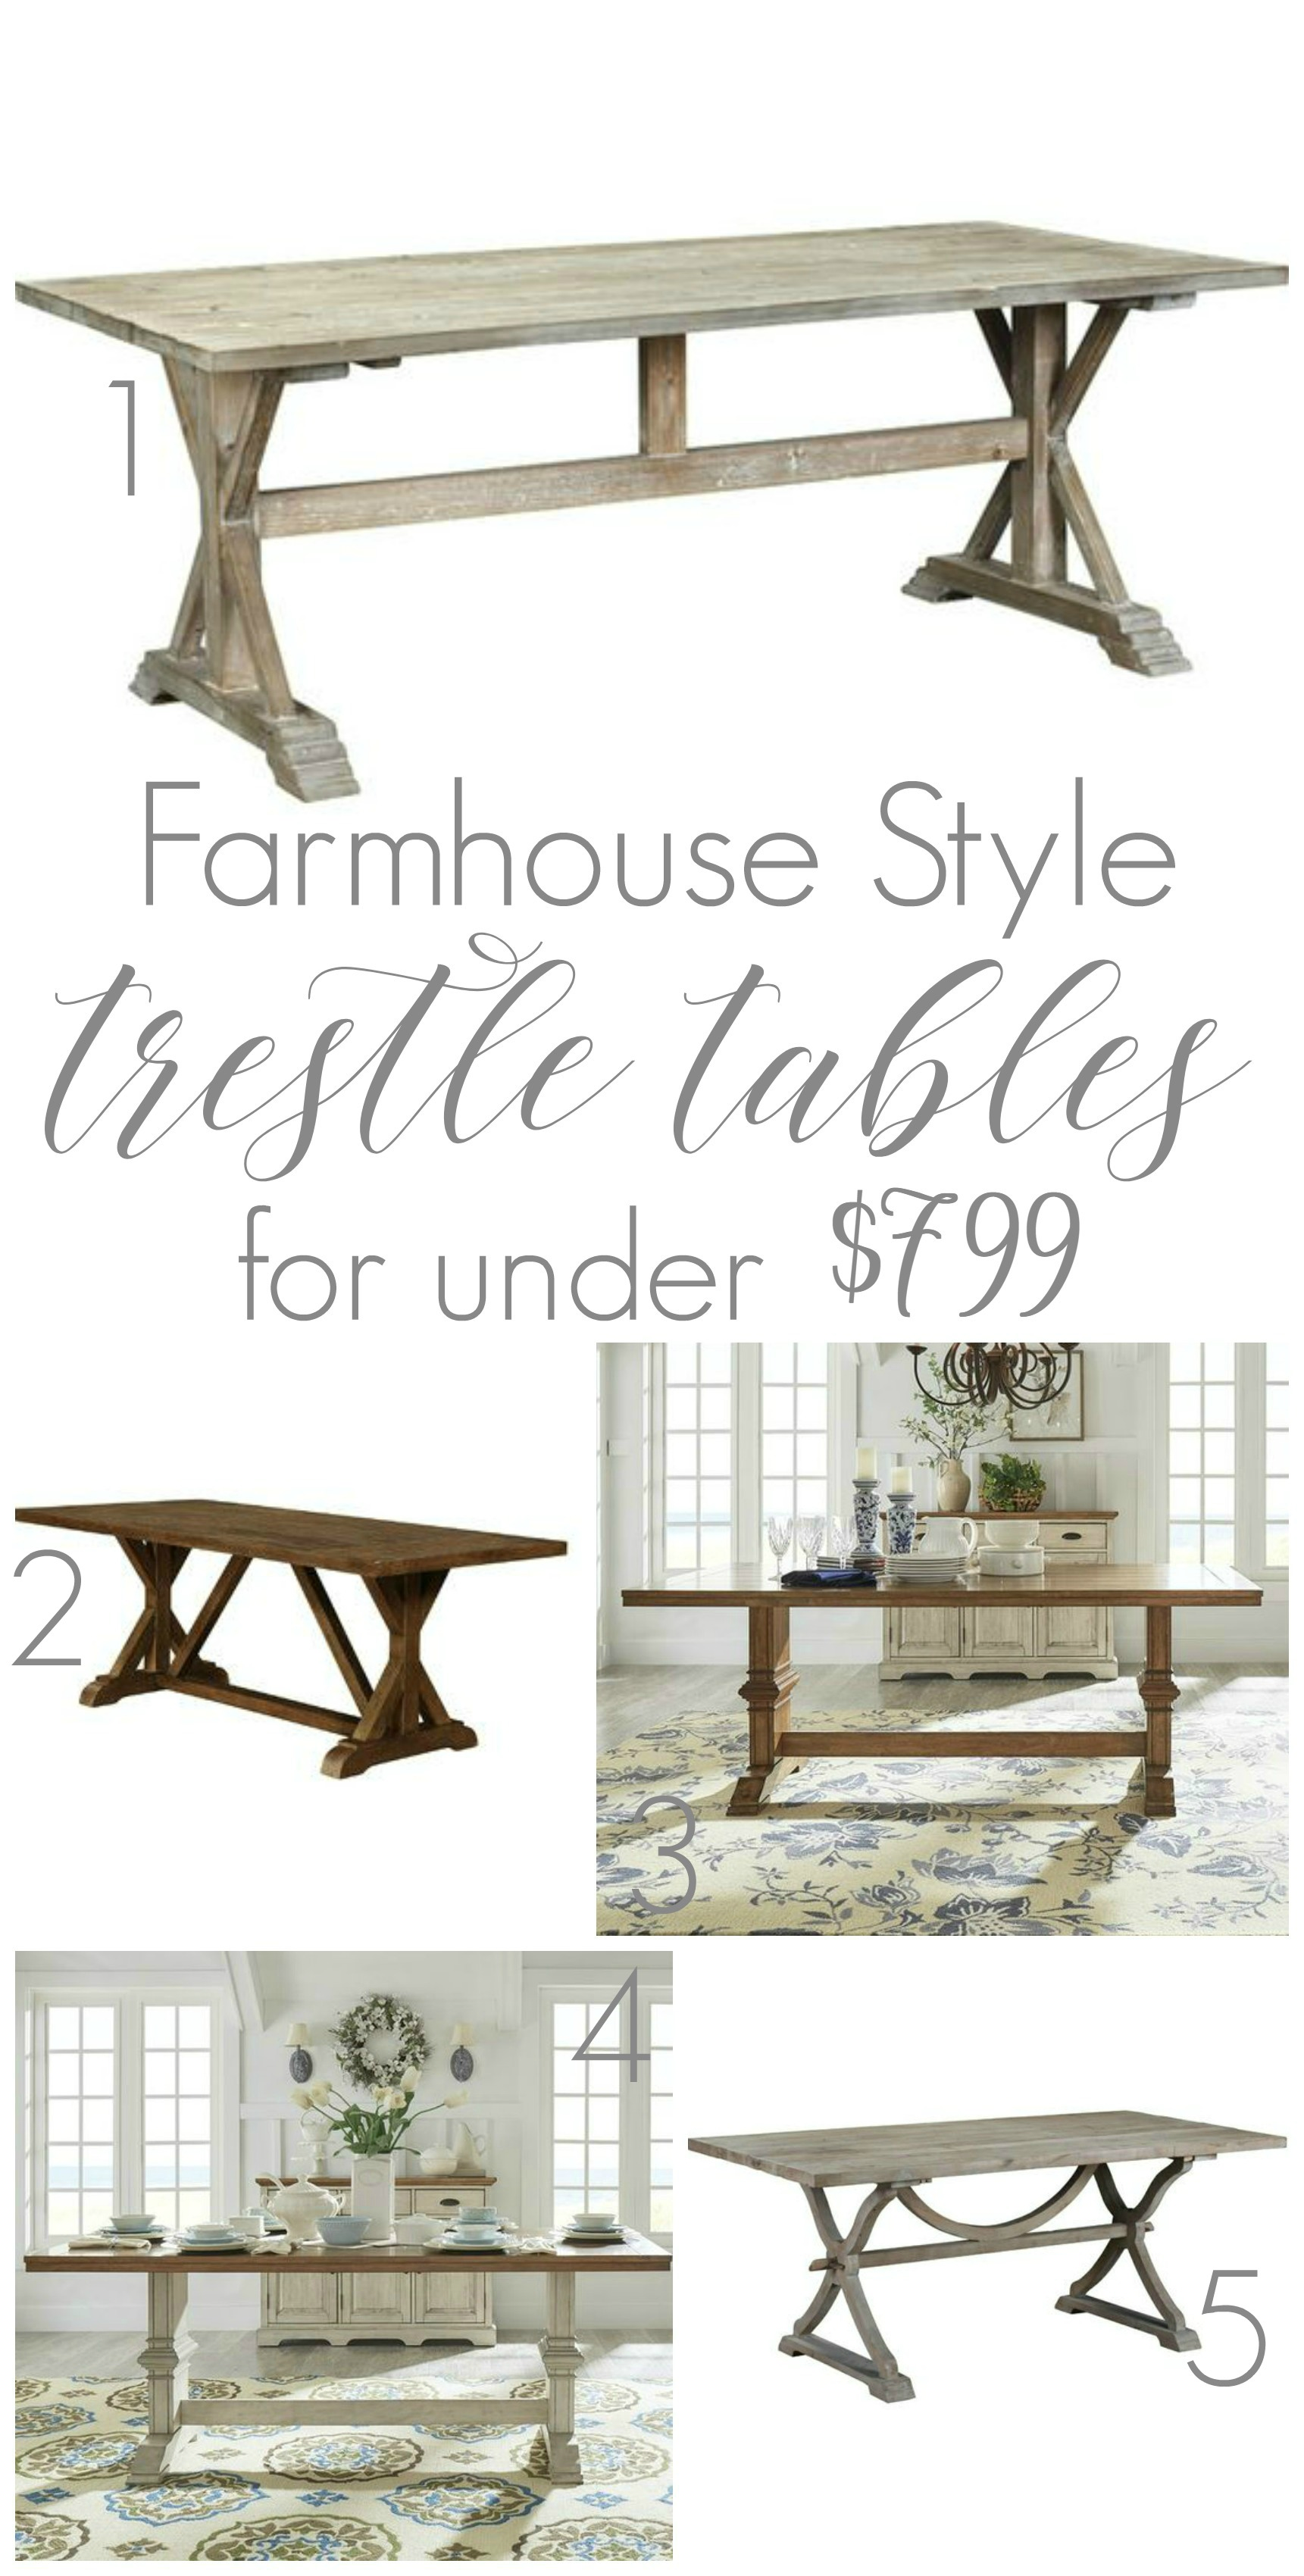 Where To Buy A Farmhouse Trestle Style Farm Table